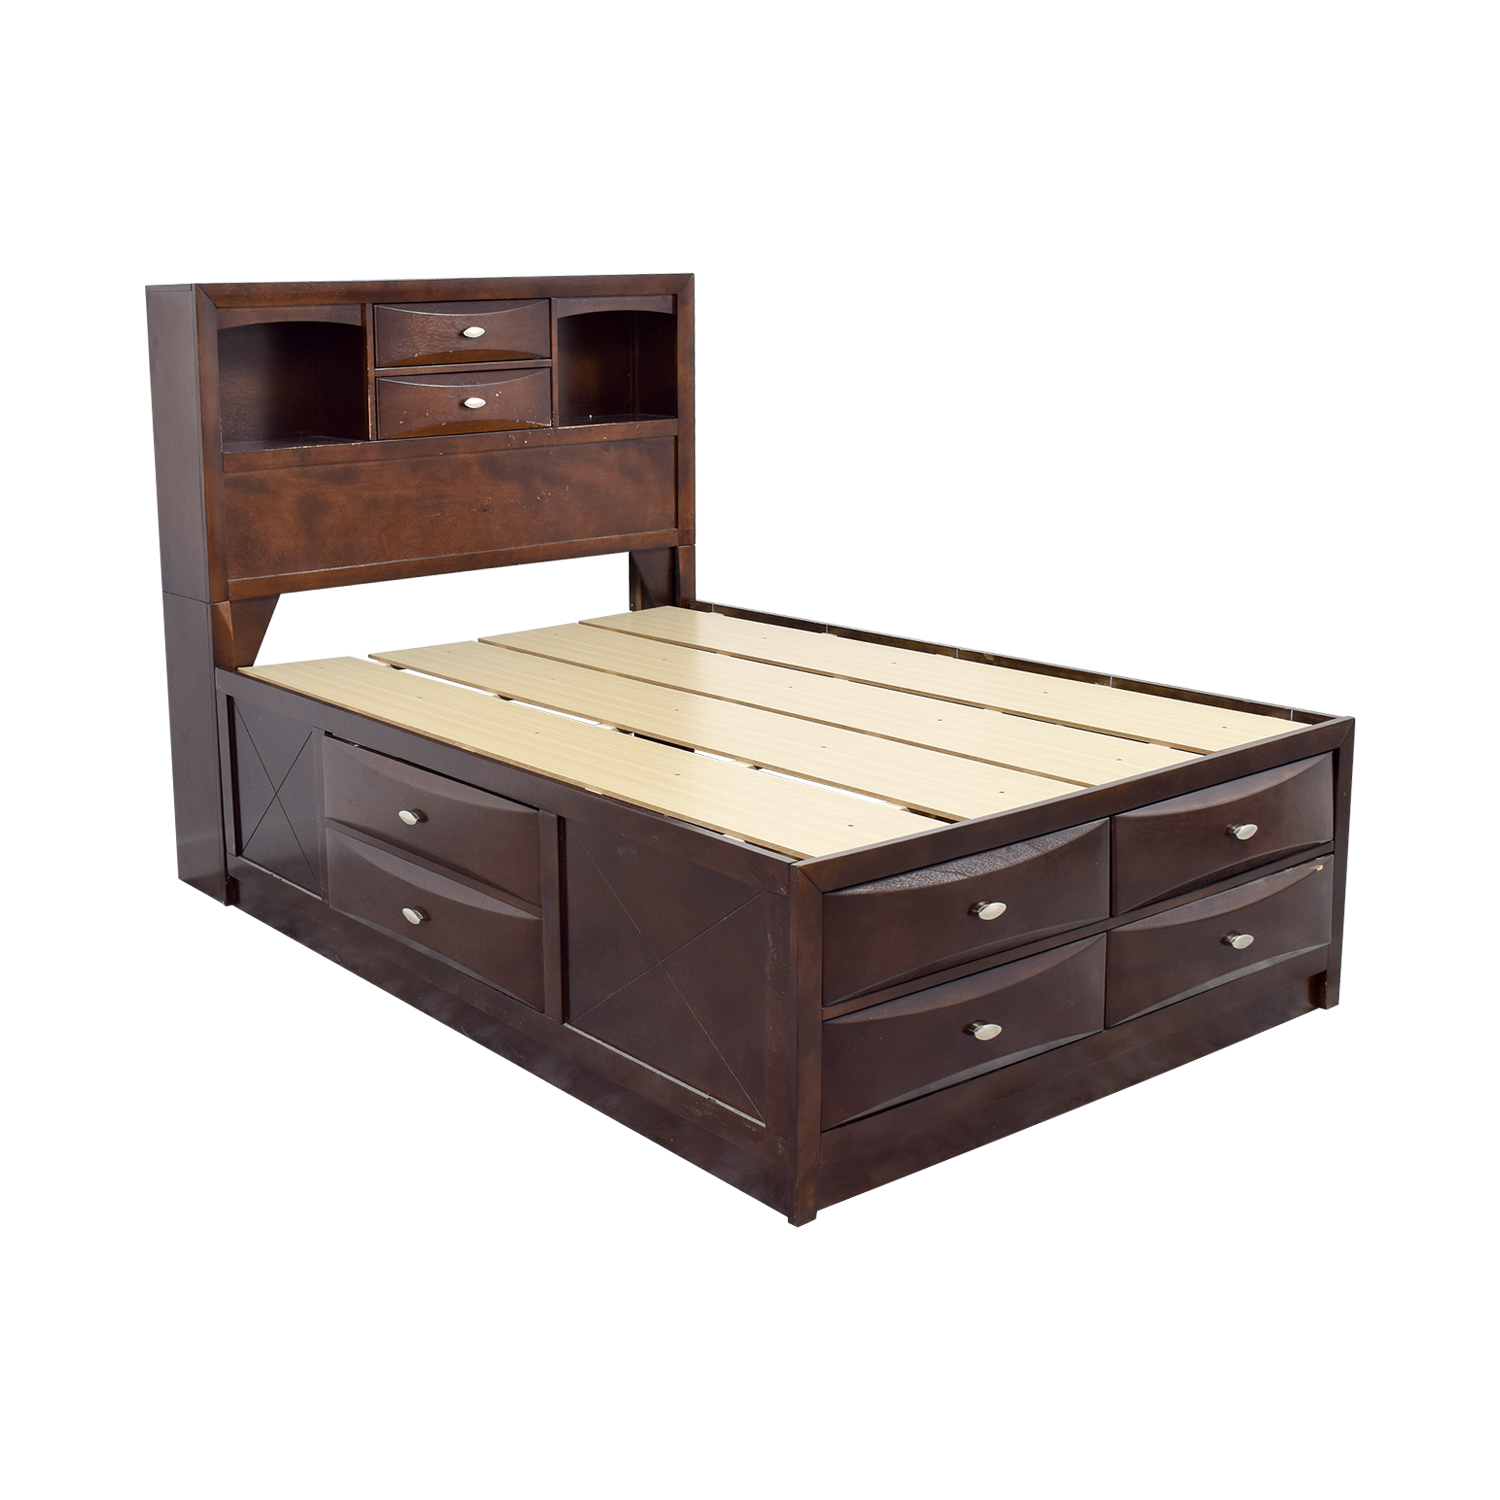 Acme Acme Louis Philippe III Cherry Queen Drawer and Bookcase Bed coupon